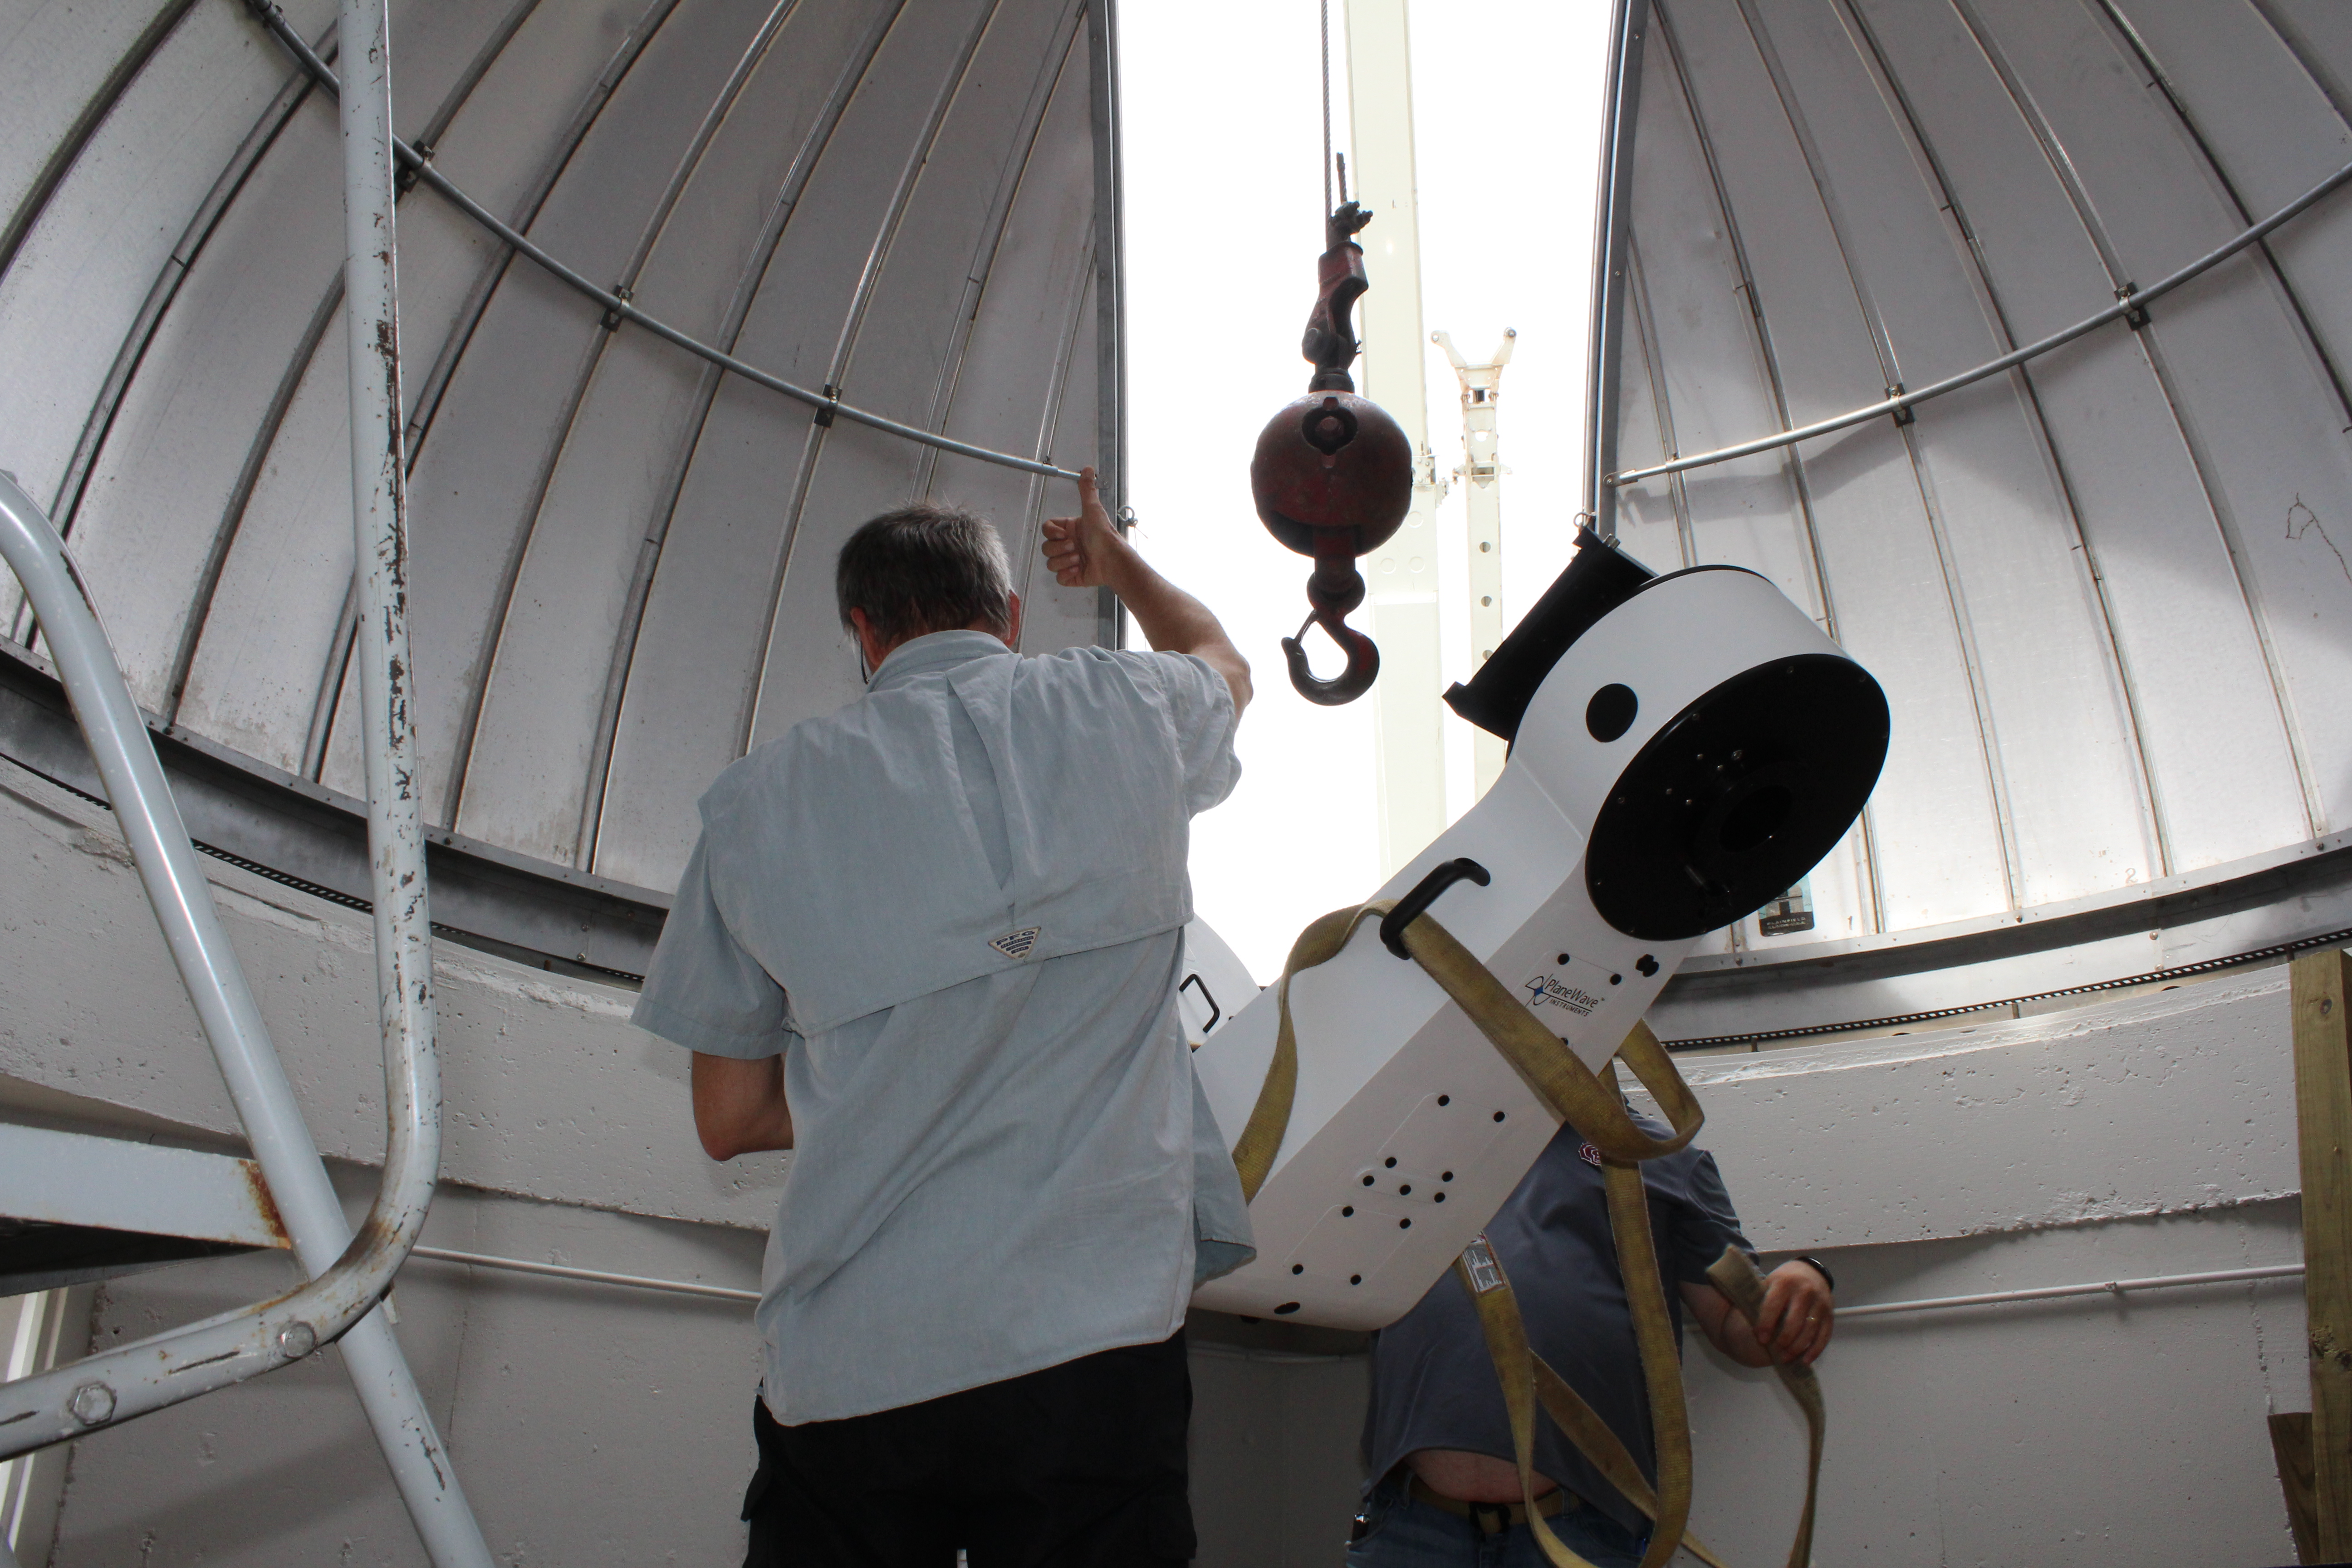 Putting in the telescope